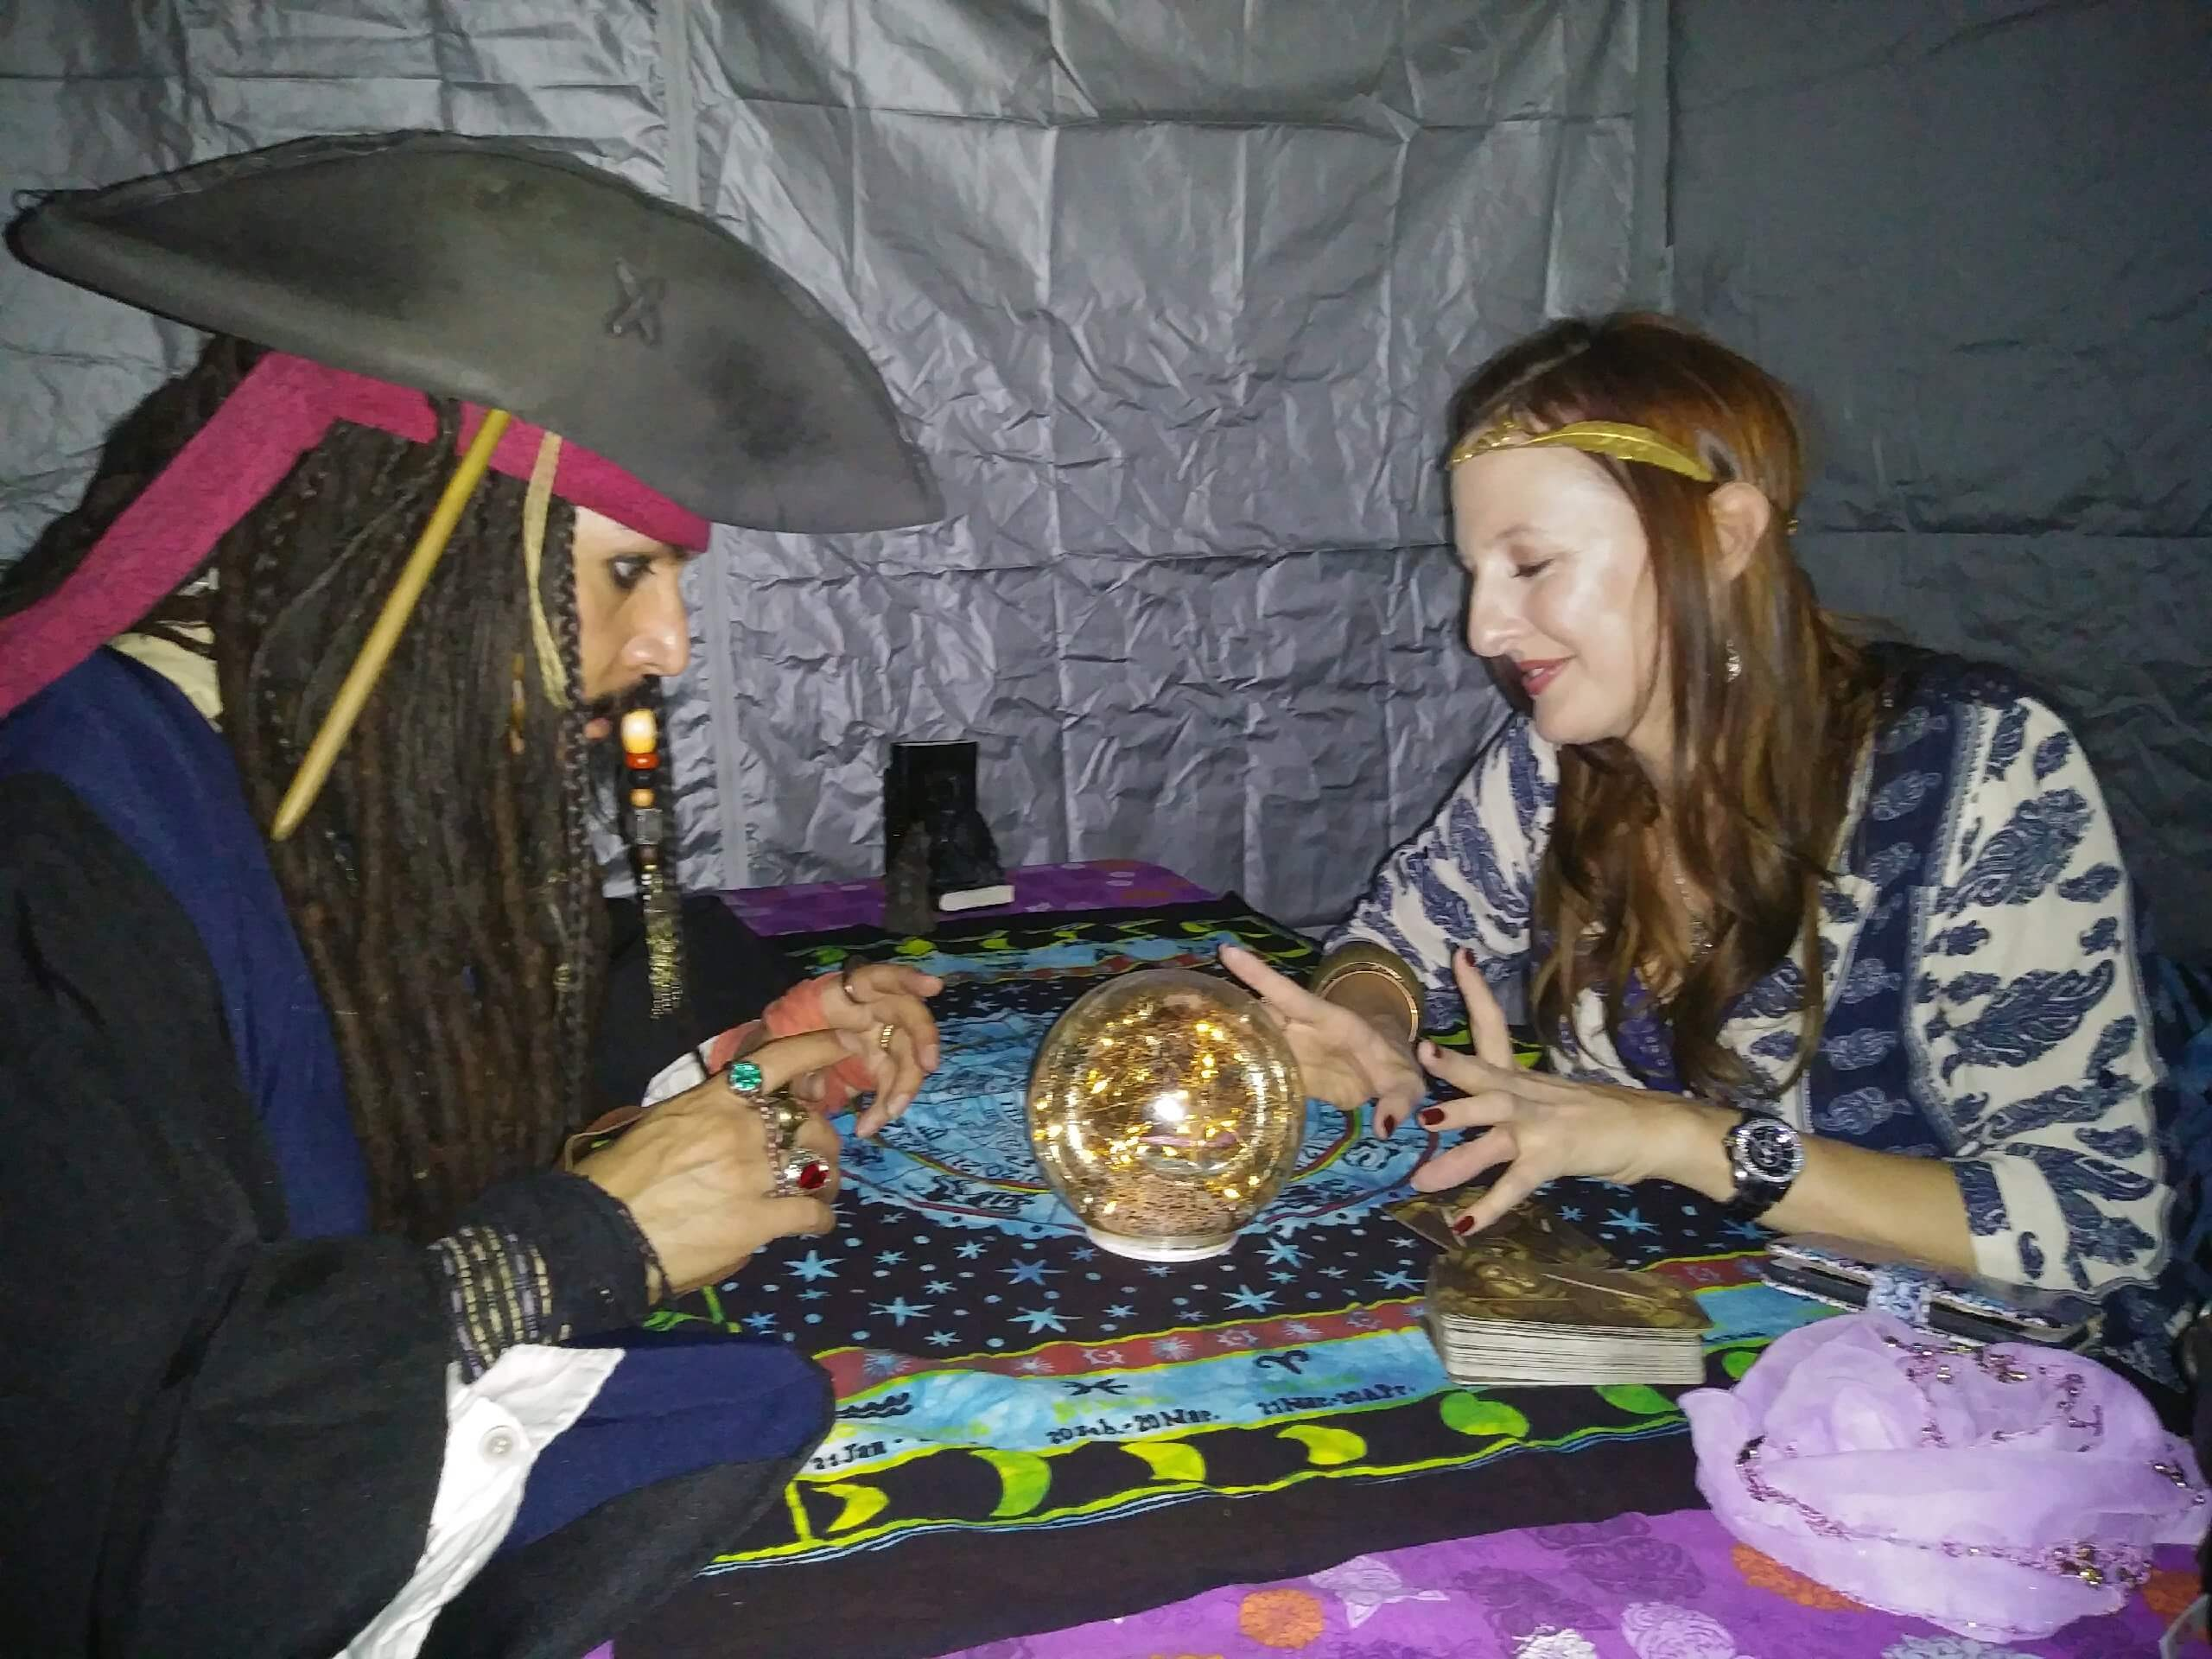 Female psychic performing Astrology to a client wearing a Jack Sparrow costume